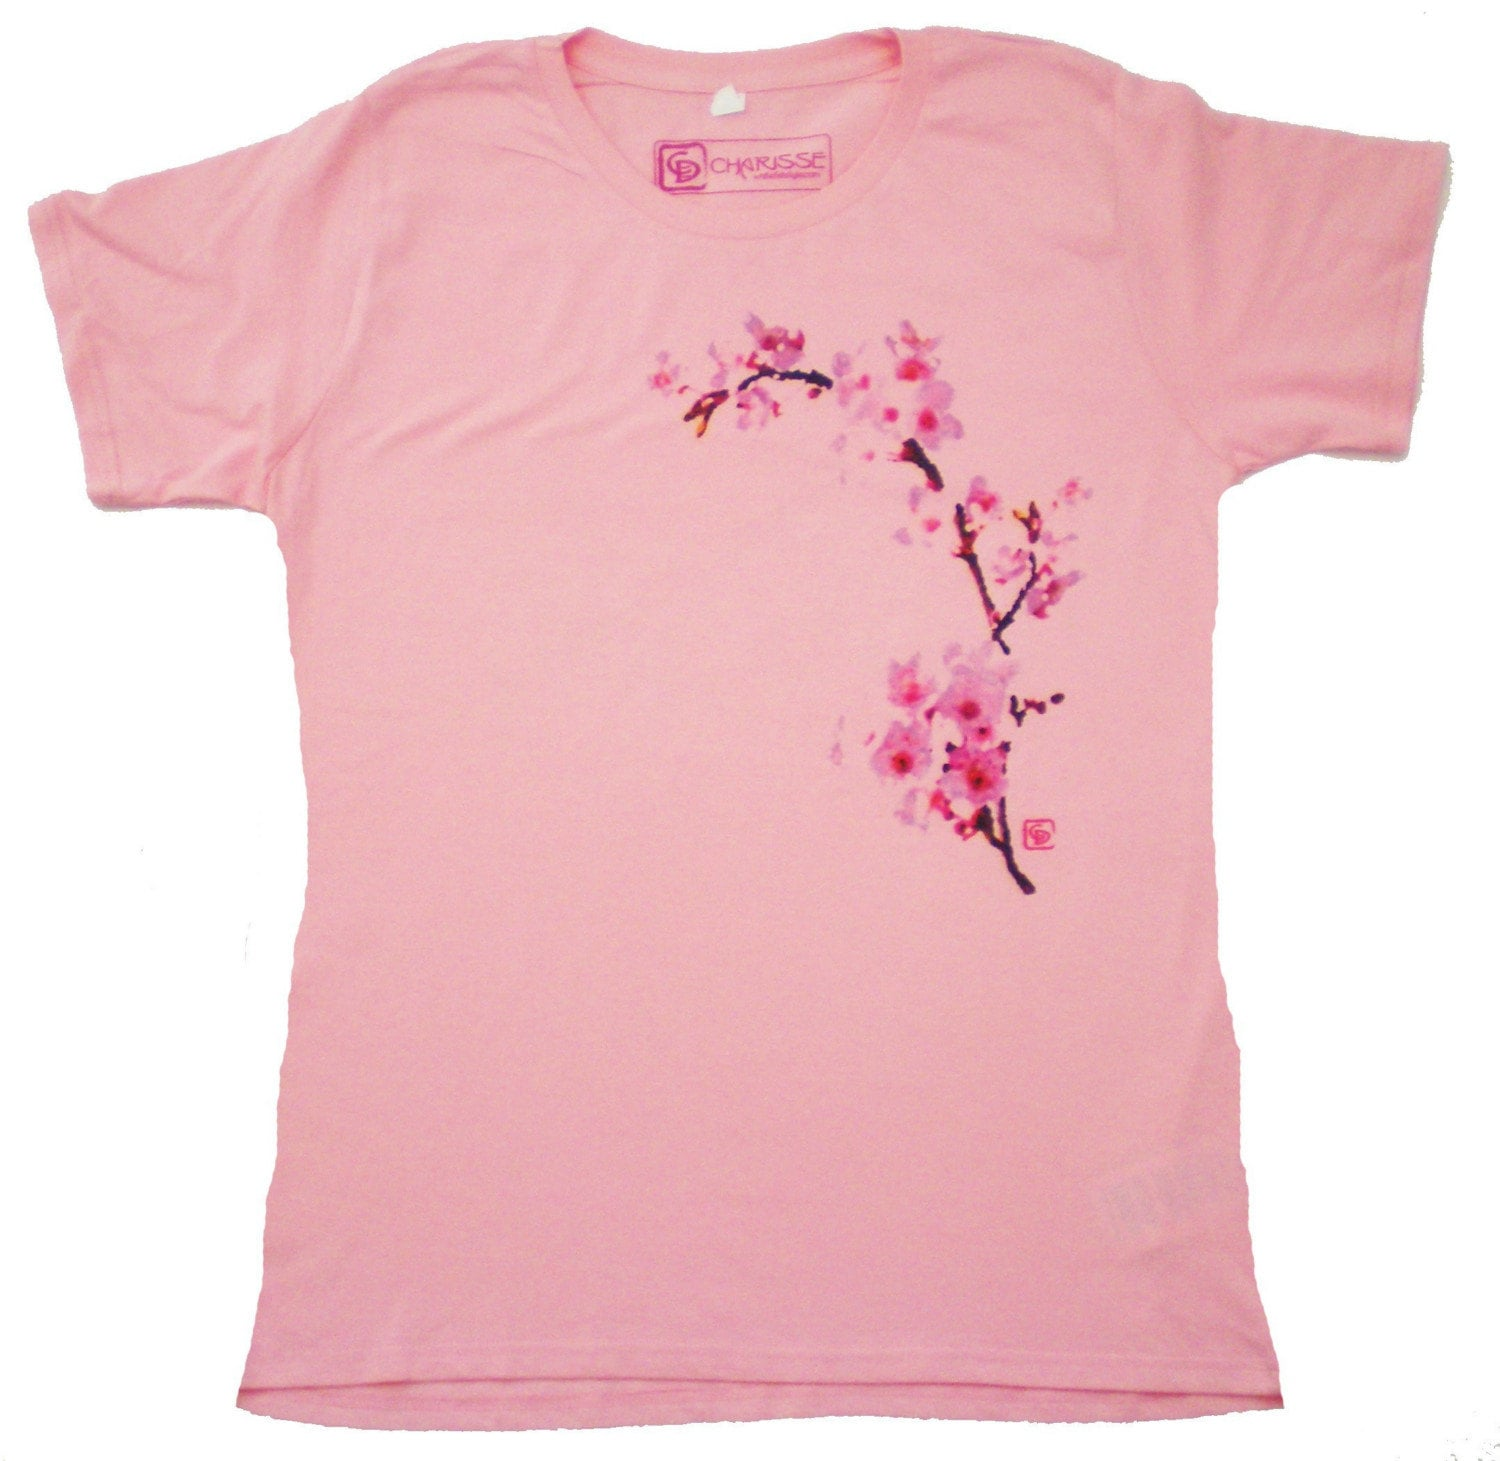 CHERRY BLOSSOMS Women's Pink t-shirt